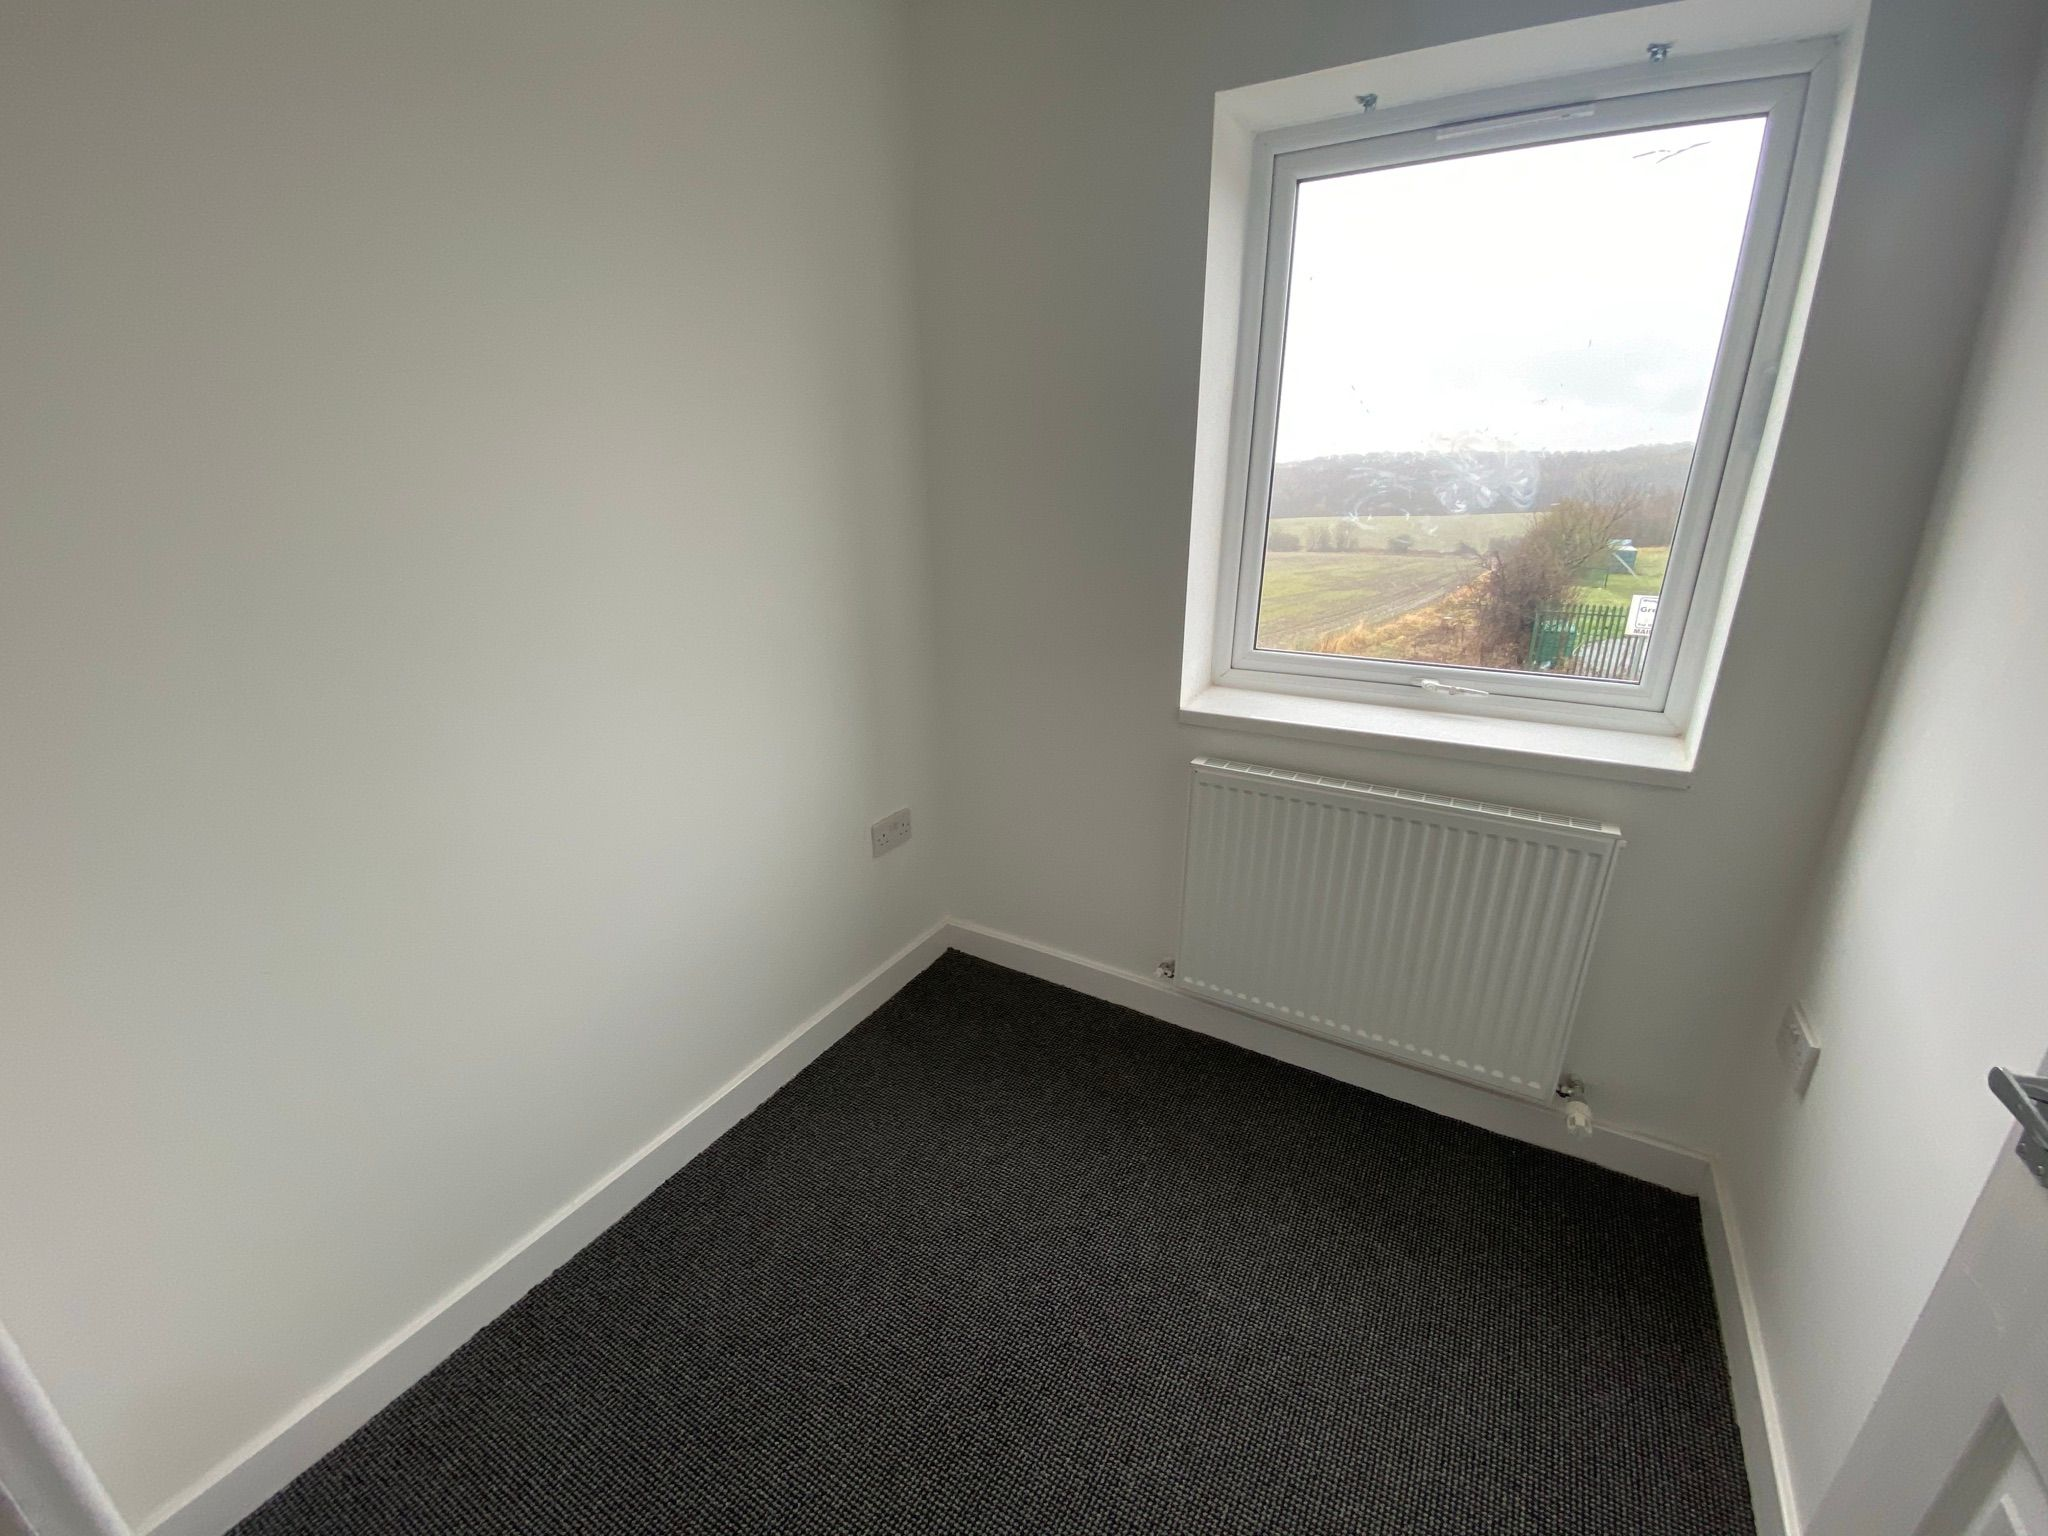 4 bedroom detached house For Sale in Durham - Photograph 27.